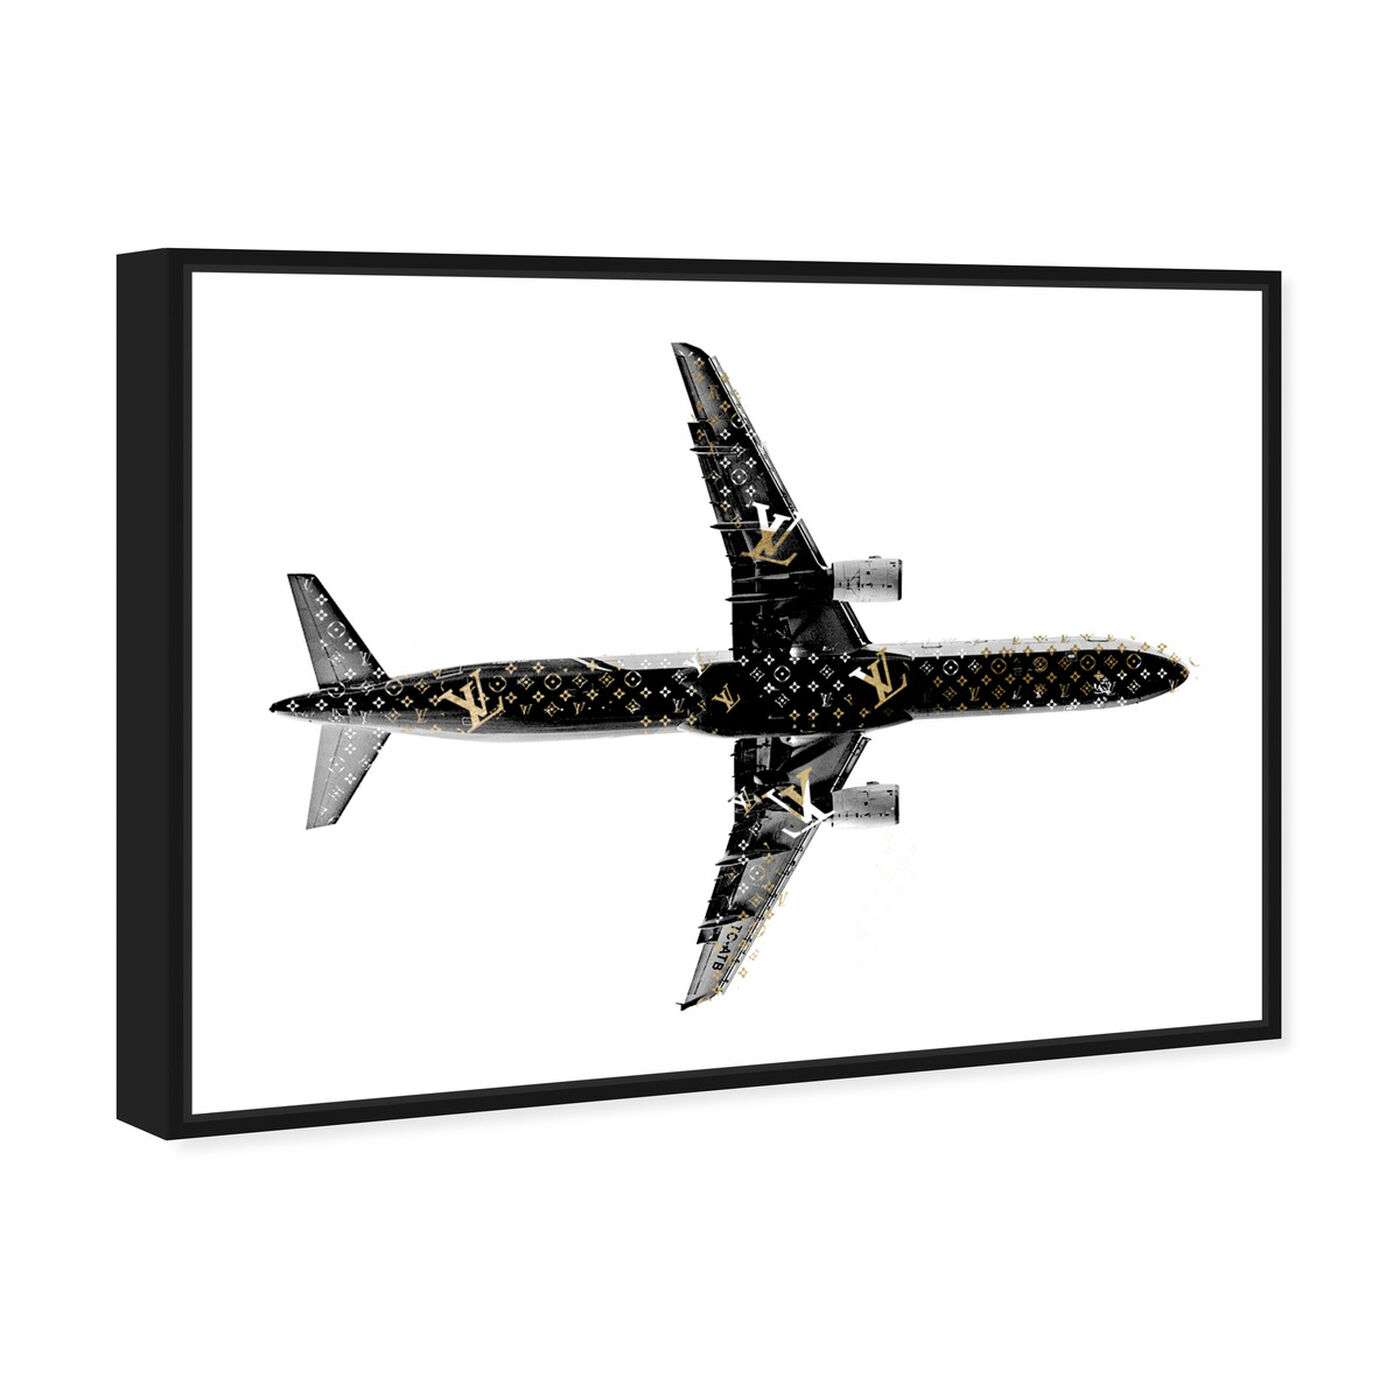 Angled view of Trendsetter LV Airlines featuring fashion and glam and lifestyle art.